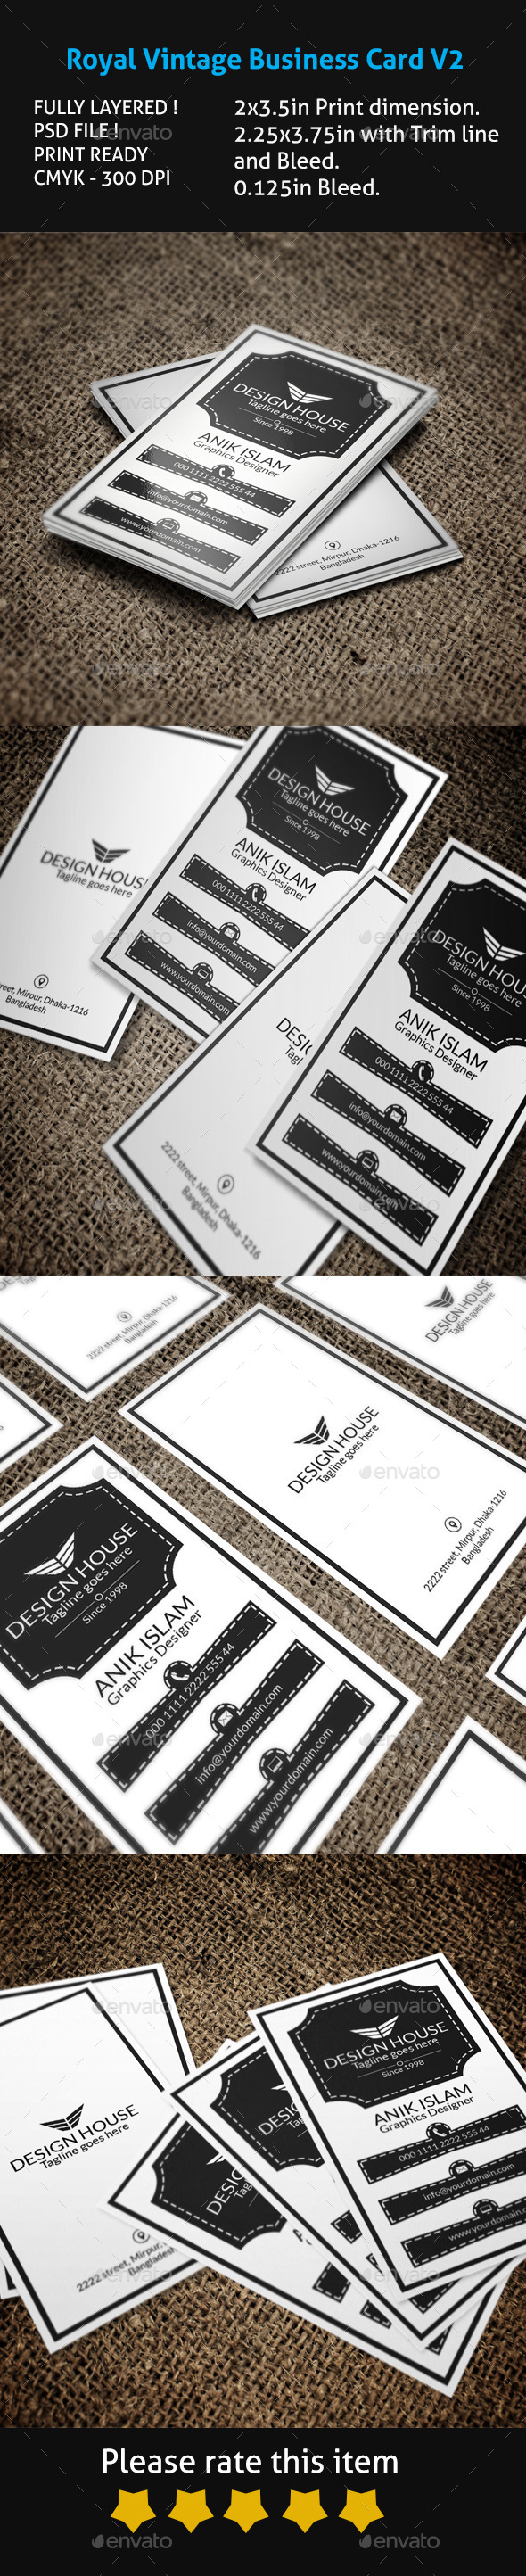 GraphicRiver Royal Vintage Business Card V2 10176476